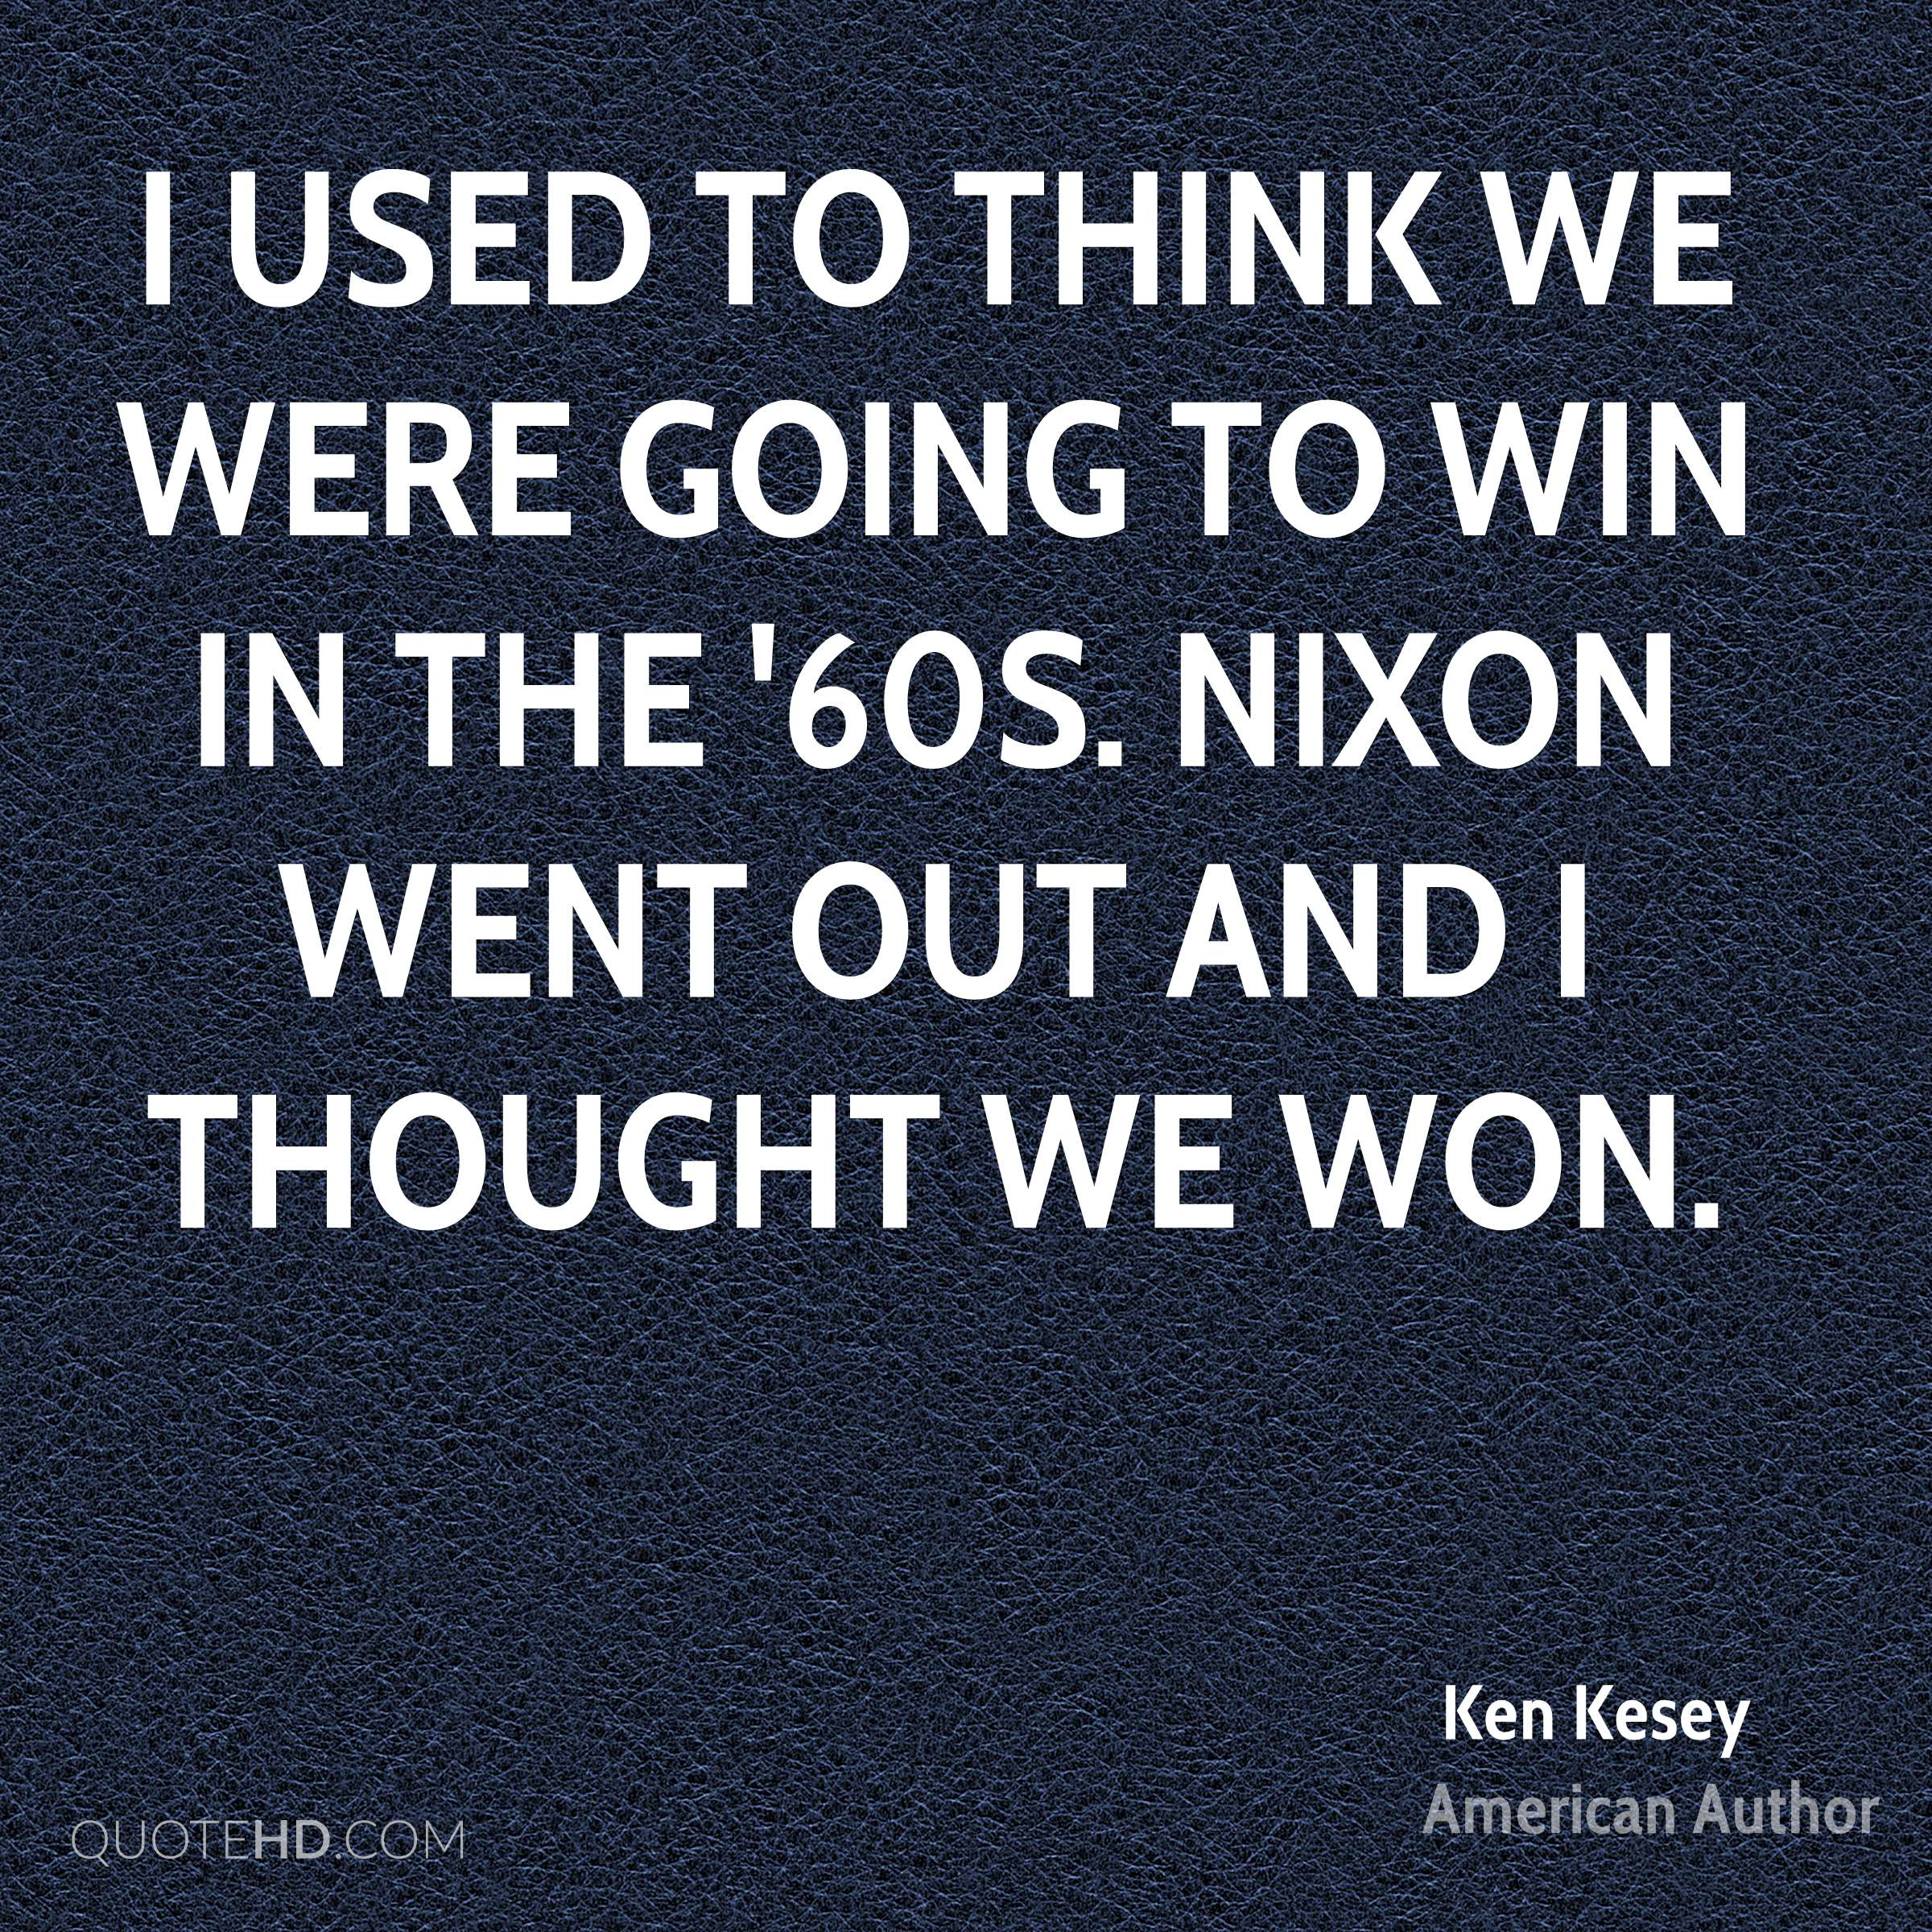 I used to think we were going to win in the '60s. Nixon went out and I thought we won.